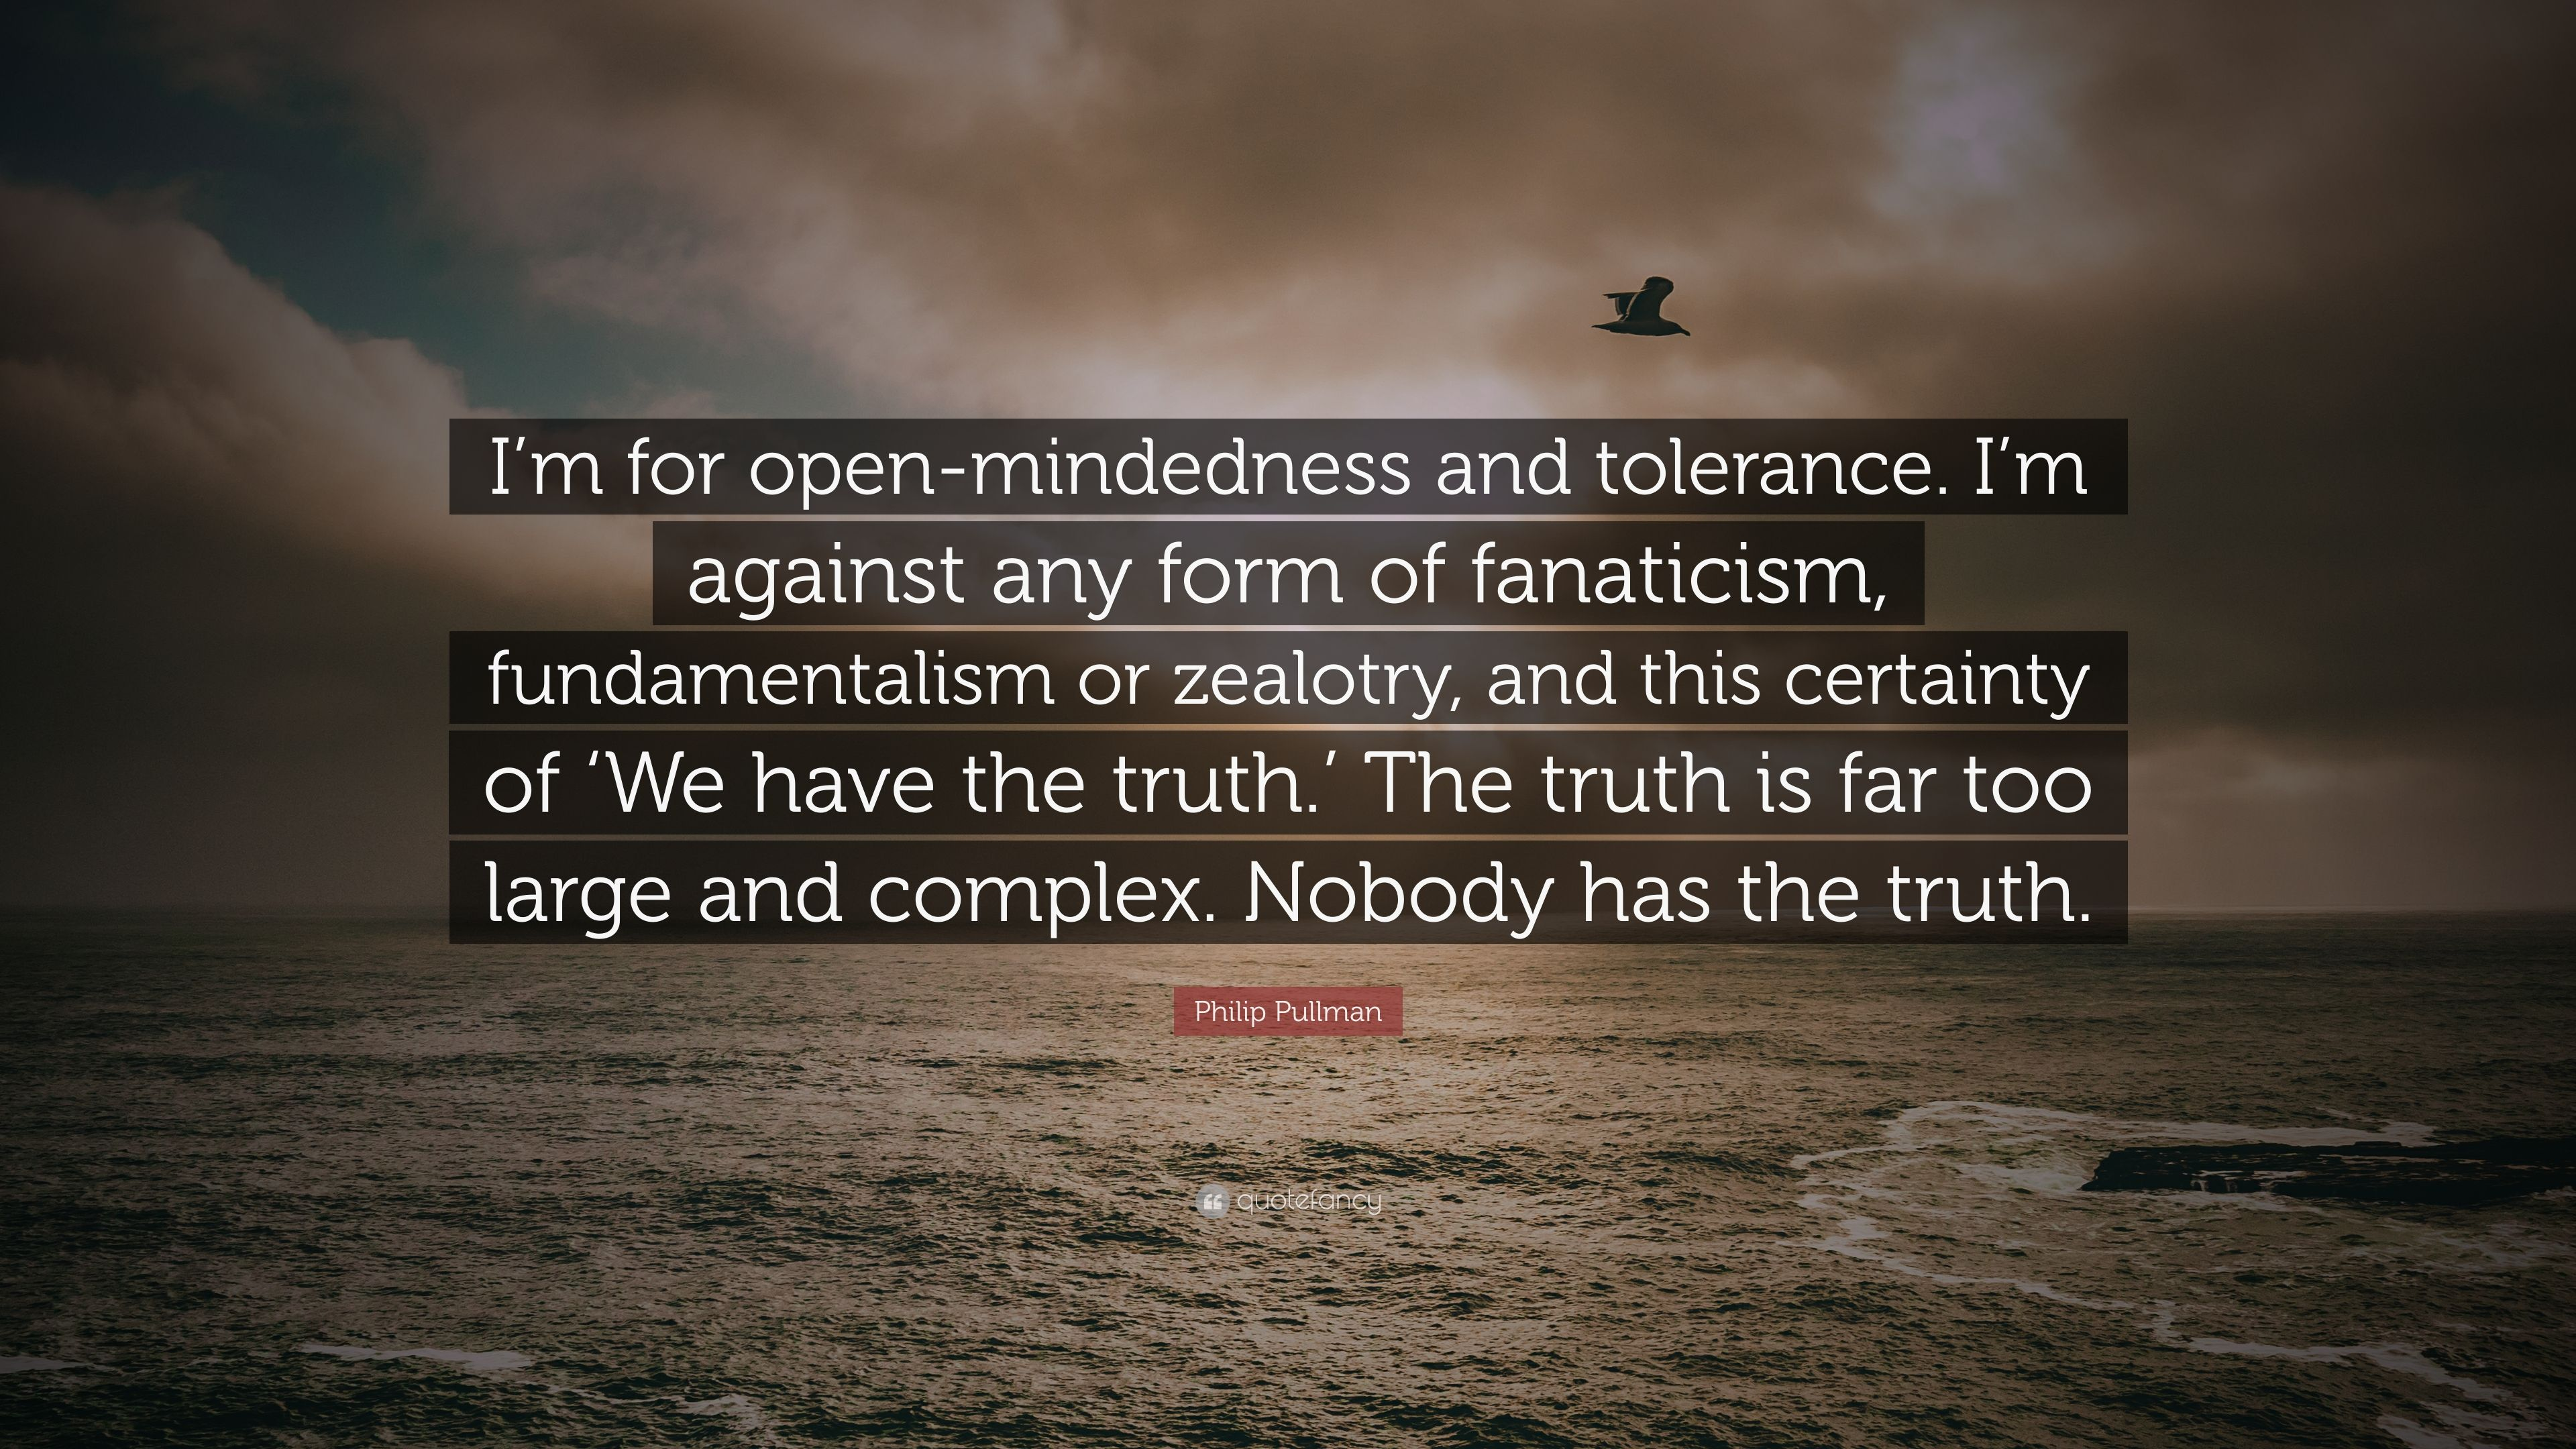 philip pullman quote im for open mindedness and tolerance i